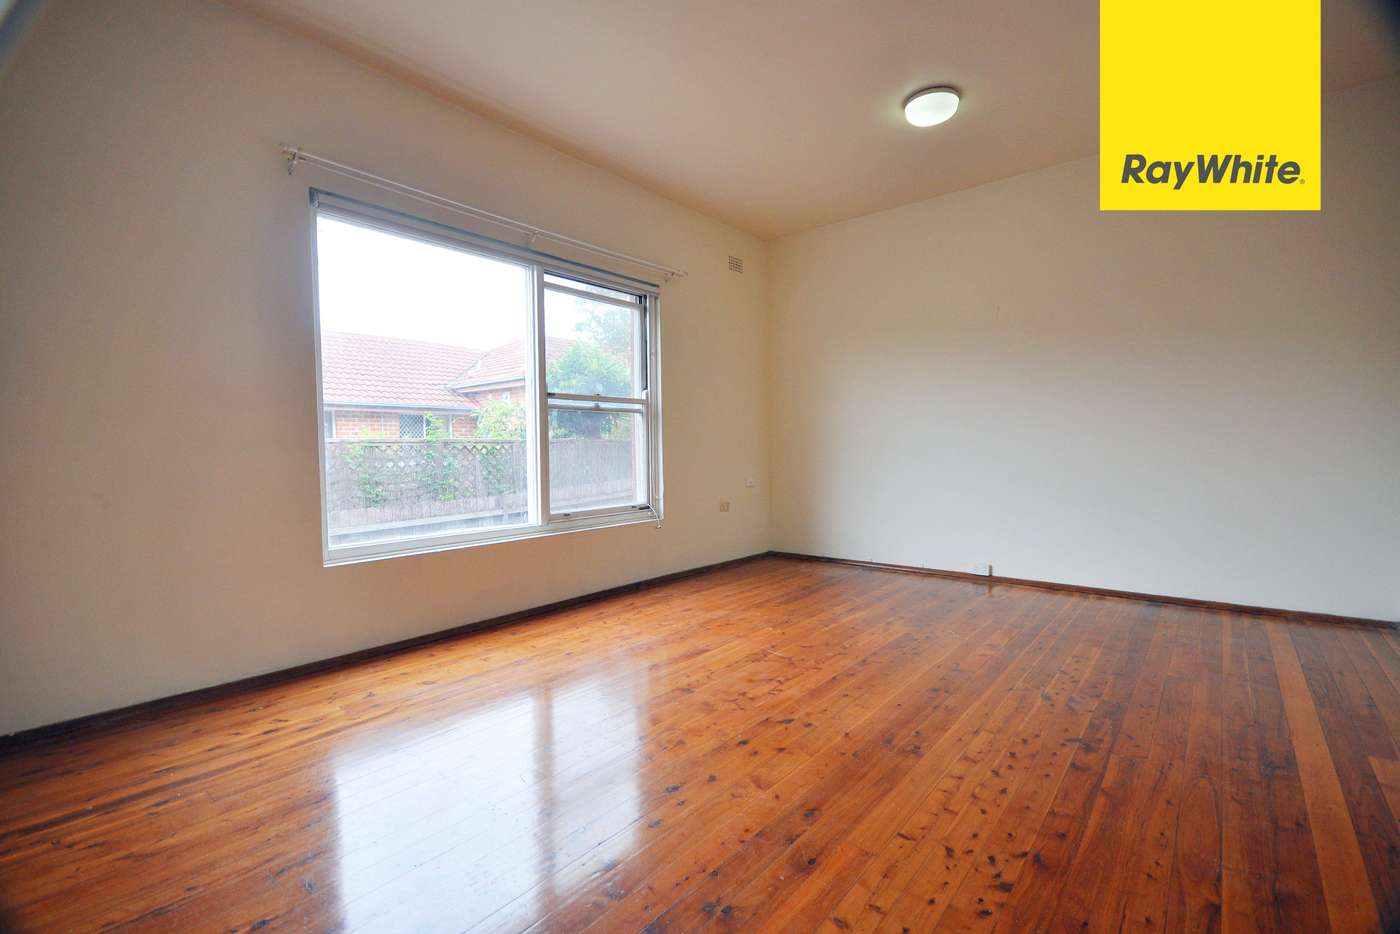 Sixth view of Homely unit listing, 4/14 Swete Street, Lidcombe NSW 2141